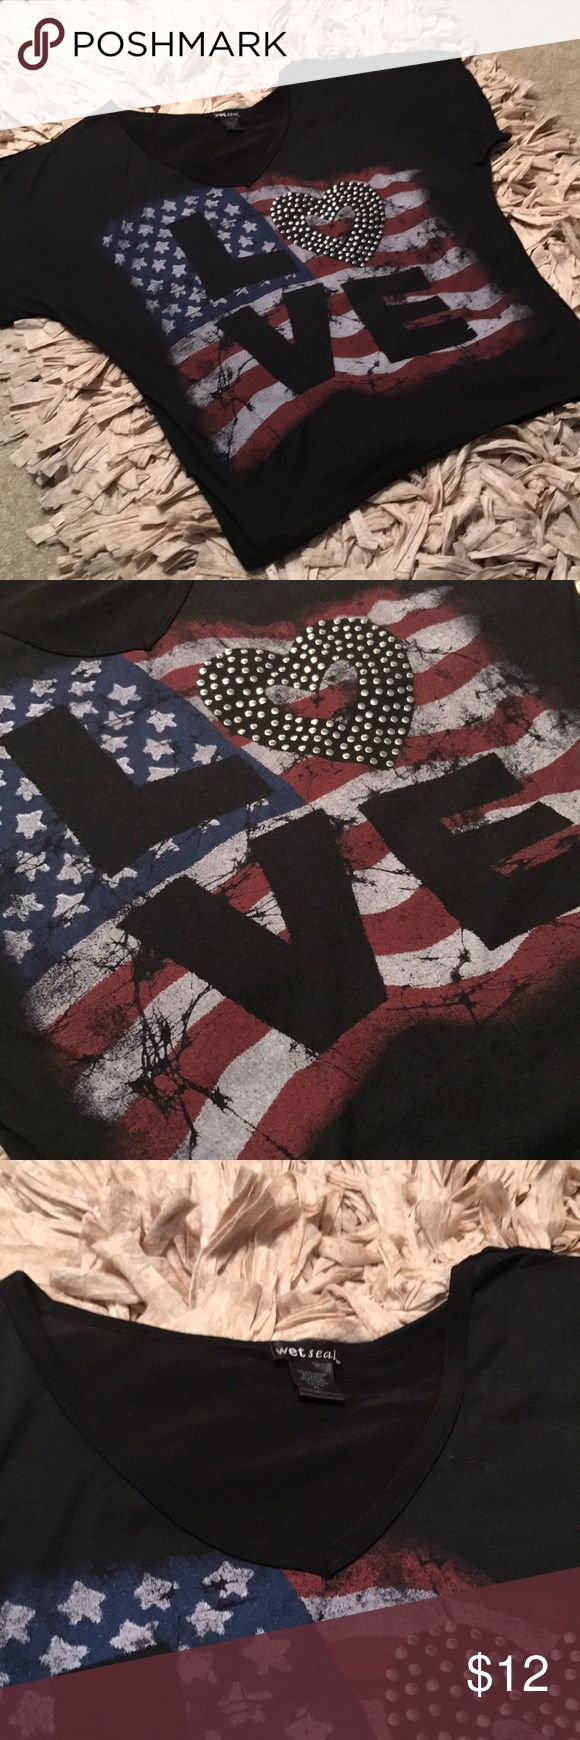 "🇺🇸 Black Vneck batwing tee with love graphic. XL Black Vneck tee with a bat wing. American flag graphic with ""love"" printed on top. The ""o"" is a heart with silver studs. Worn once! Nice flowy fit. Could be worn off the shoulder. XL Tops"